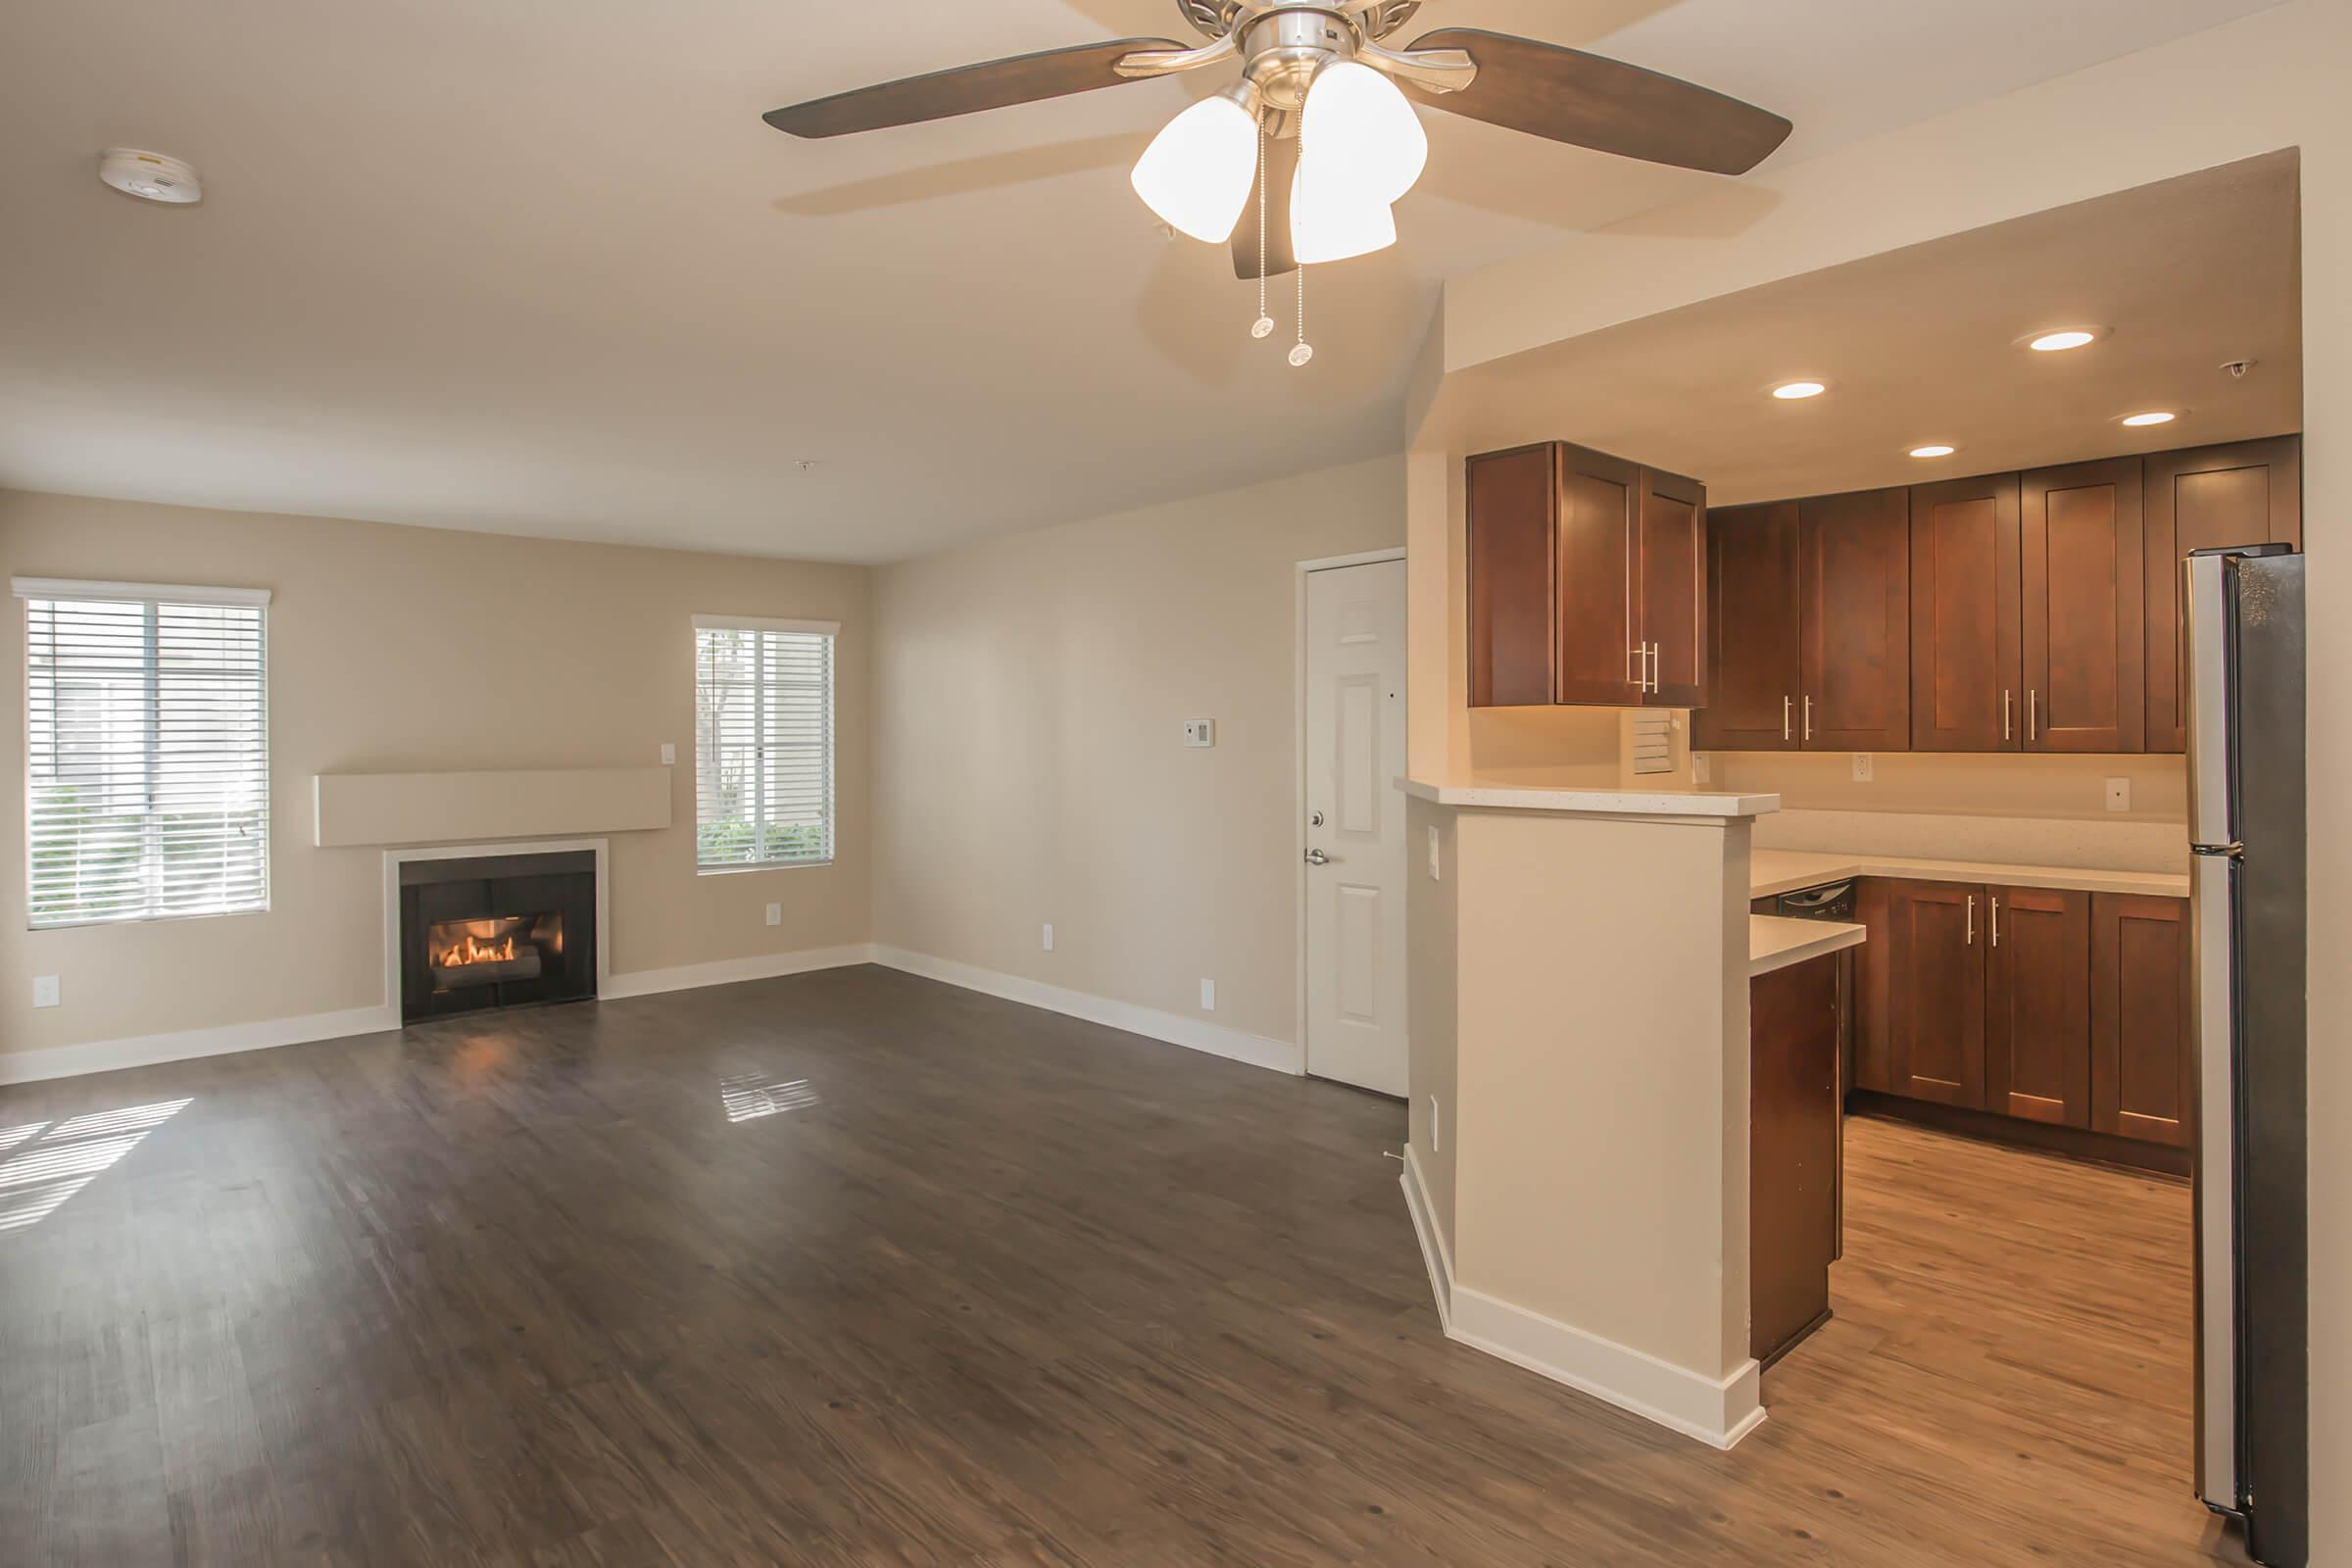 Unfurnished living room with fireplace and kitchen